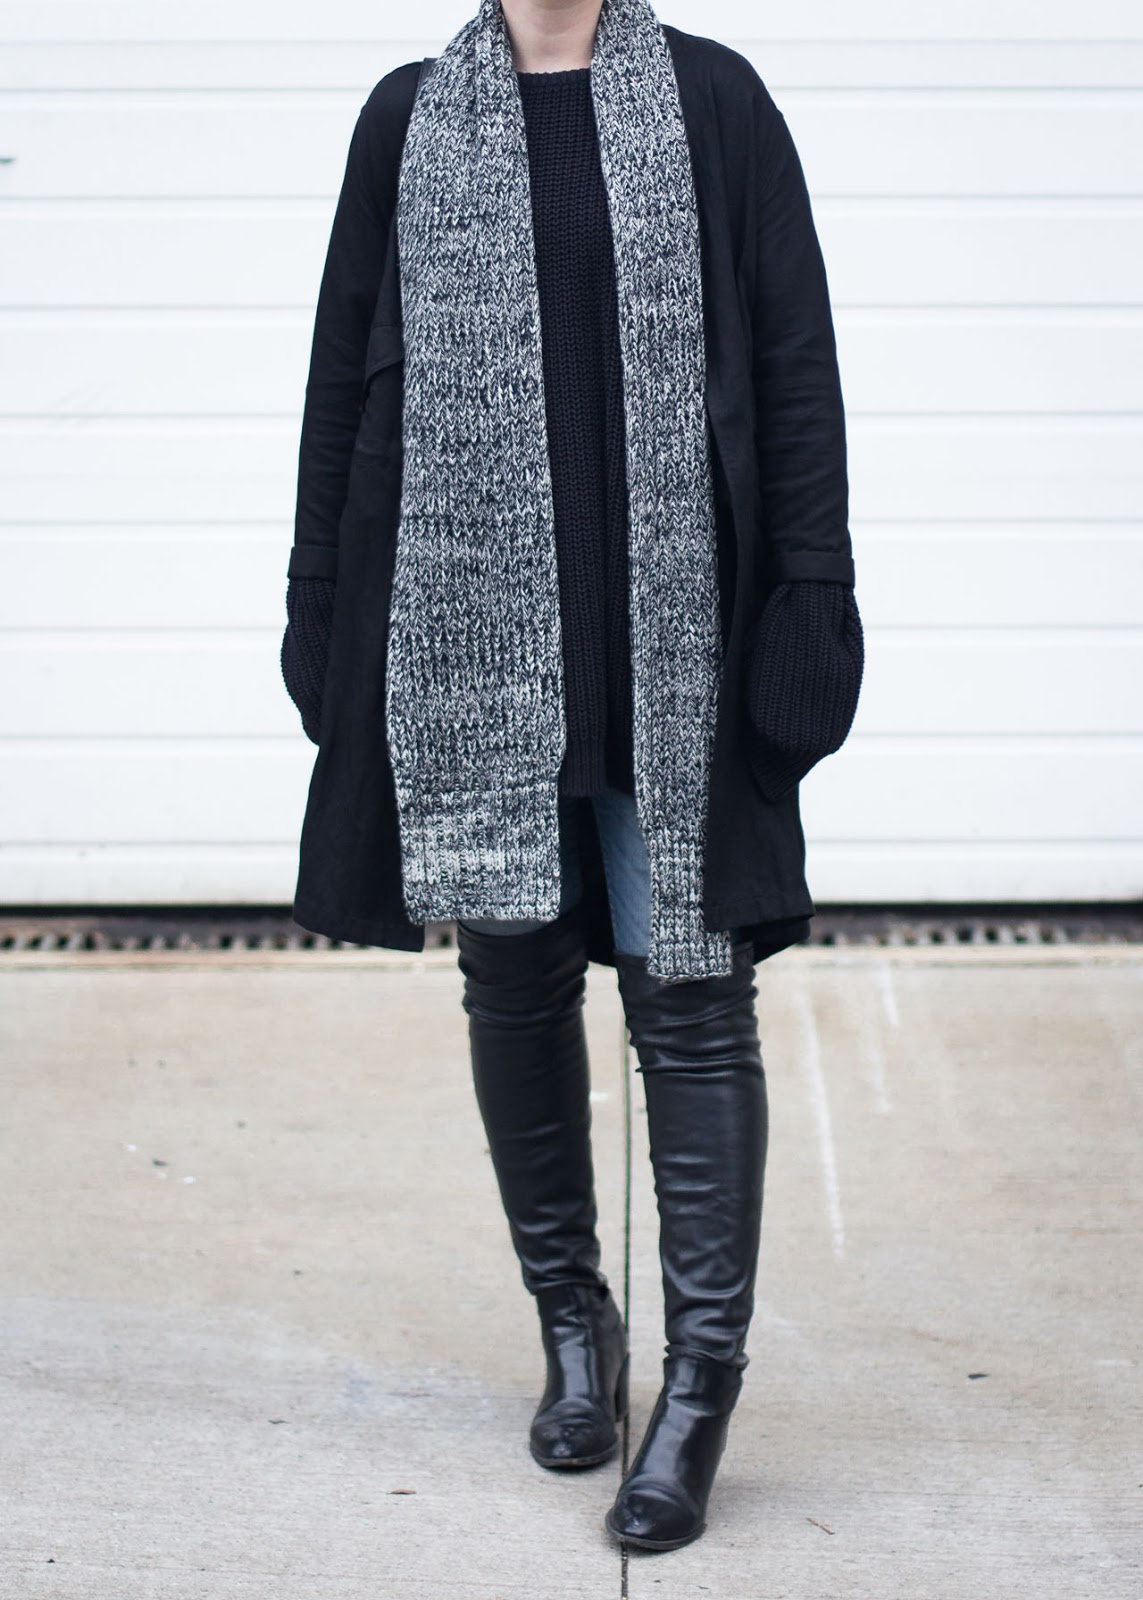 Oversized winter style - Vancouver Fashion Blogger outfit - Aritzia jacket - Zara boots